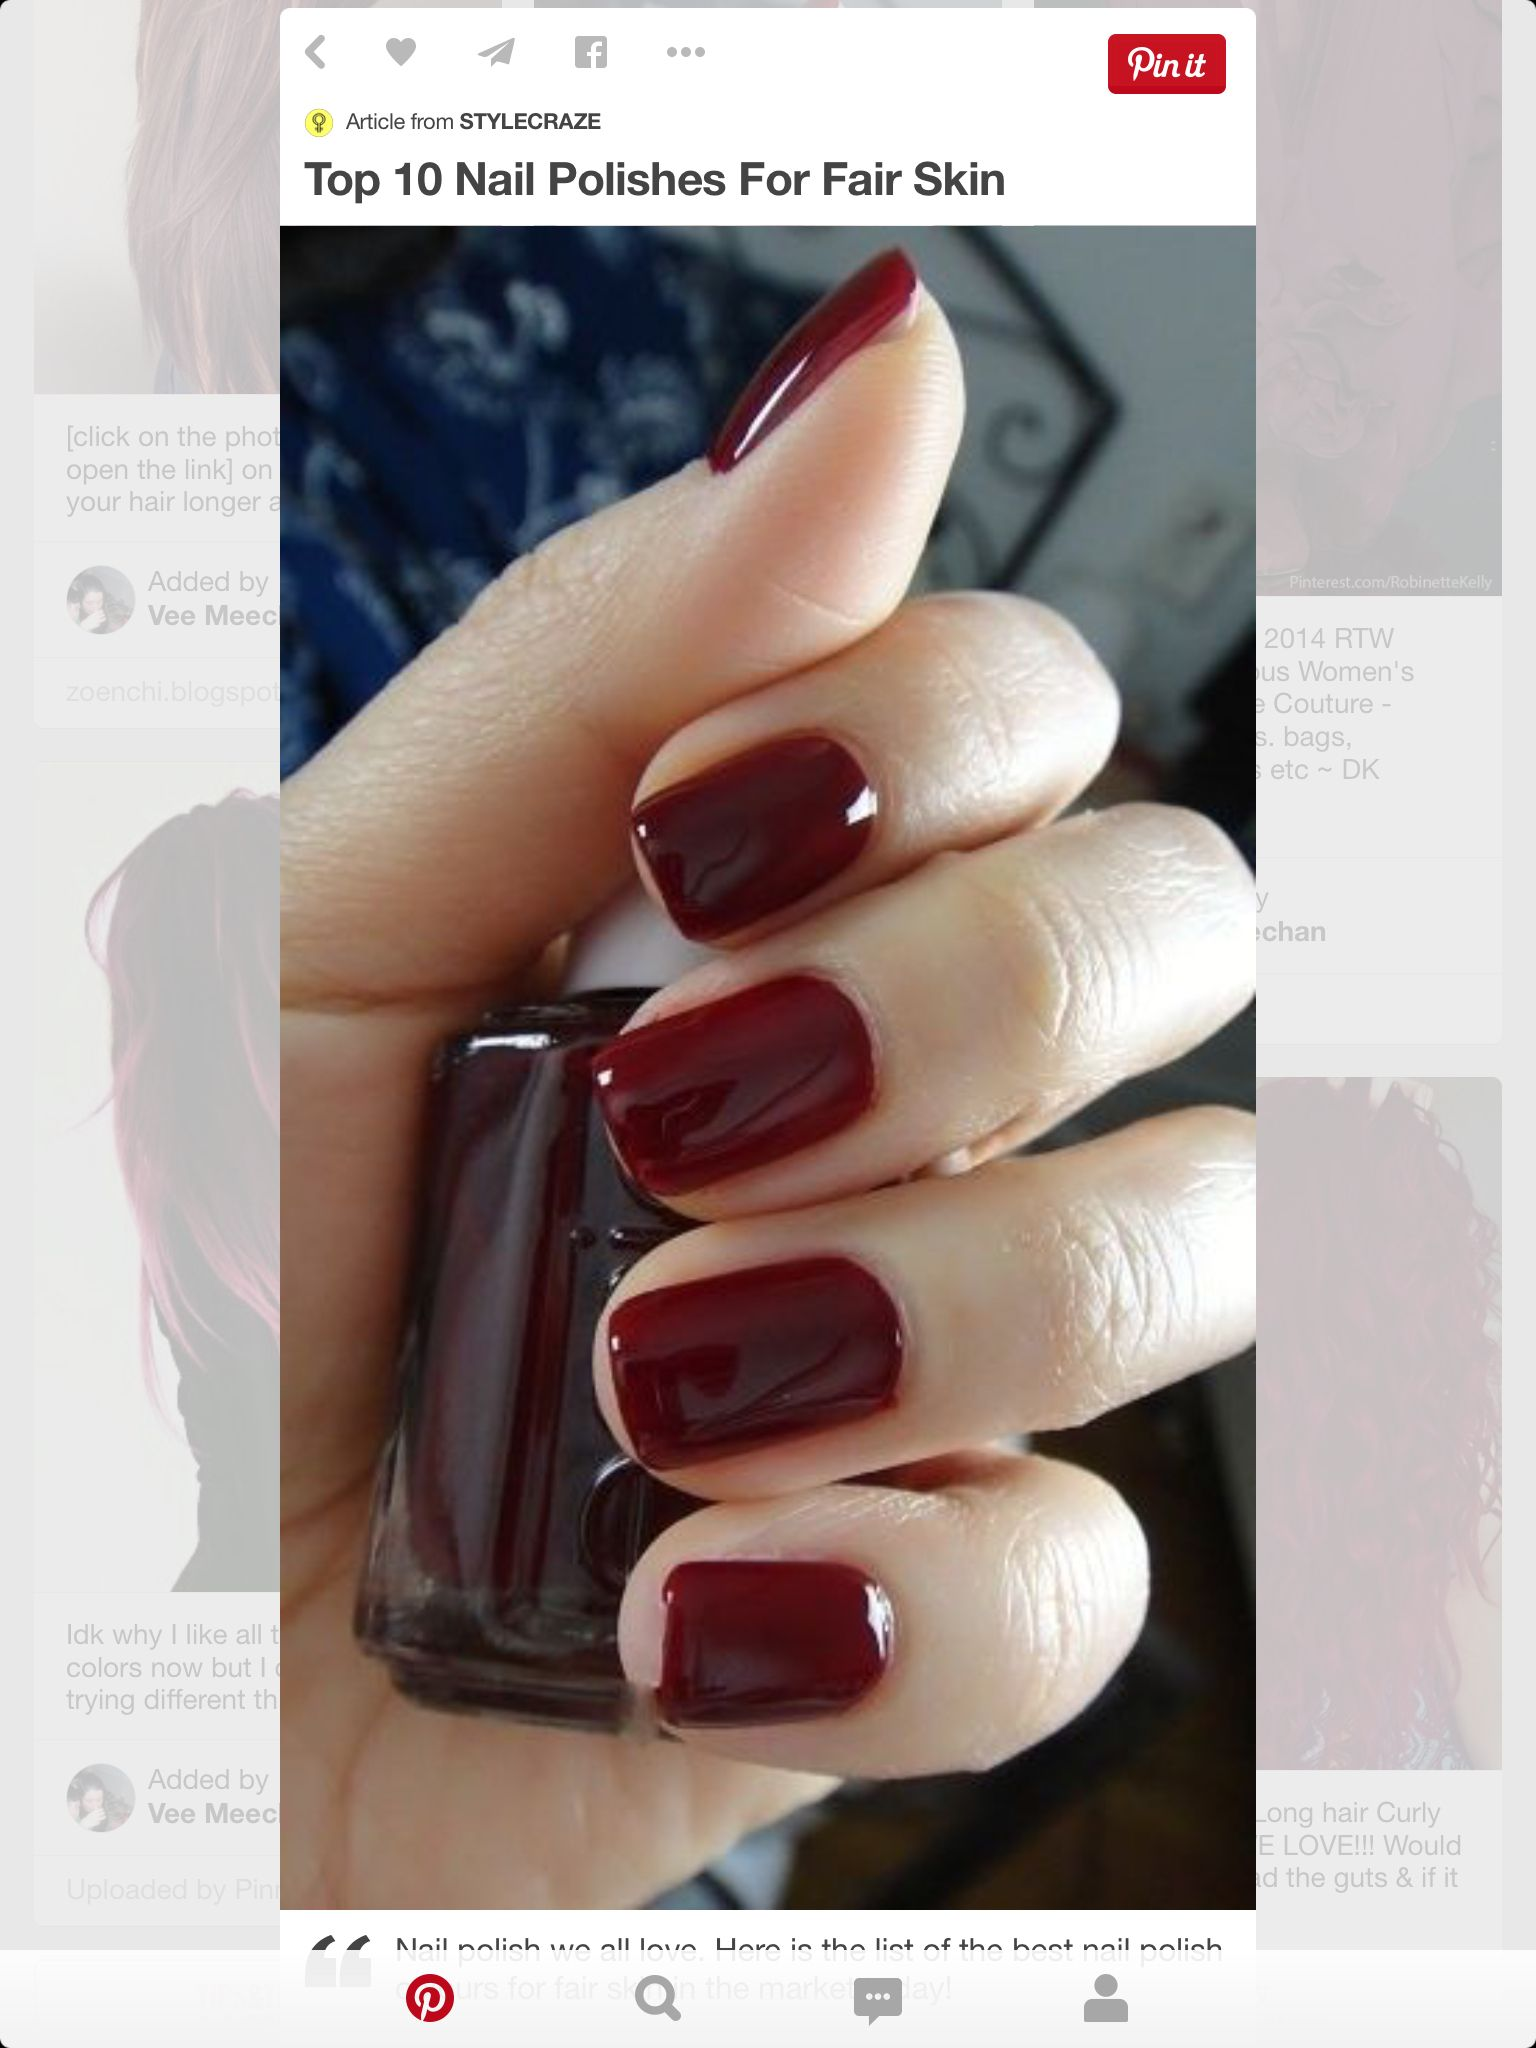 Pin by kayla gove on manicures | Pinterest | Makeup, Nails games and ...